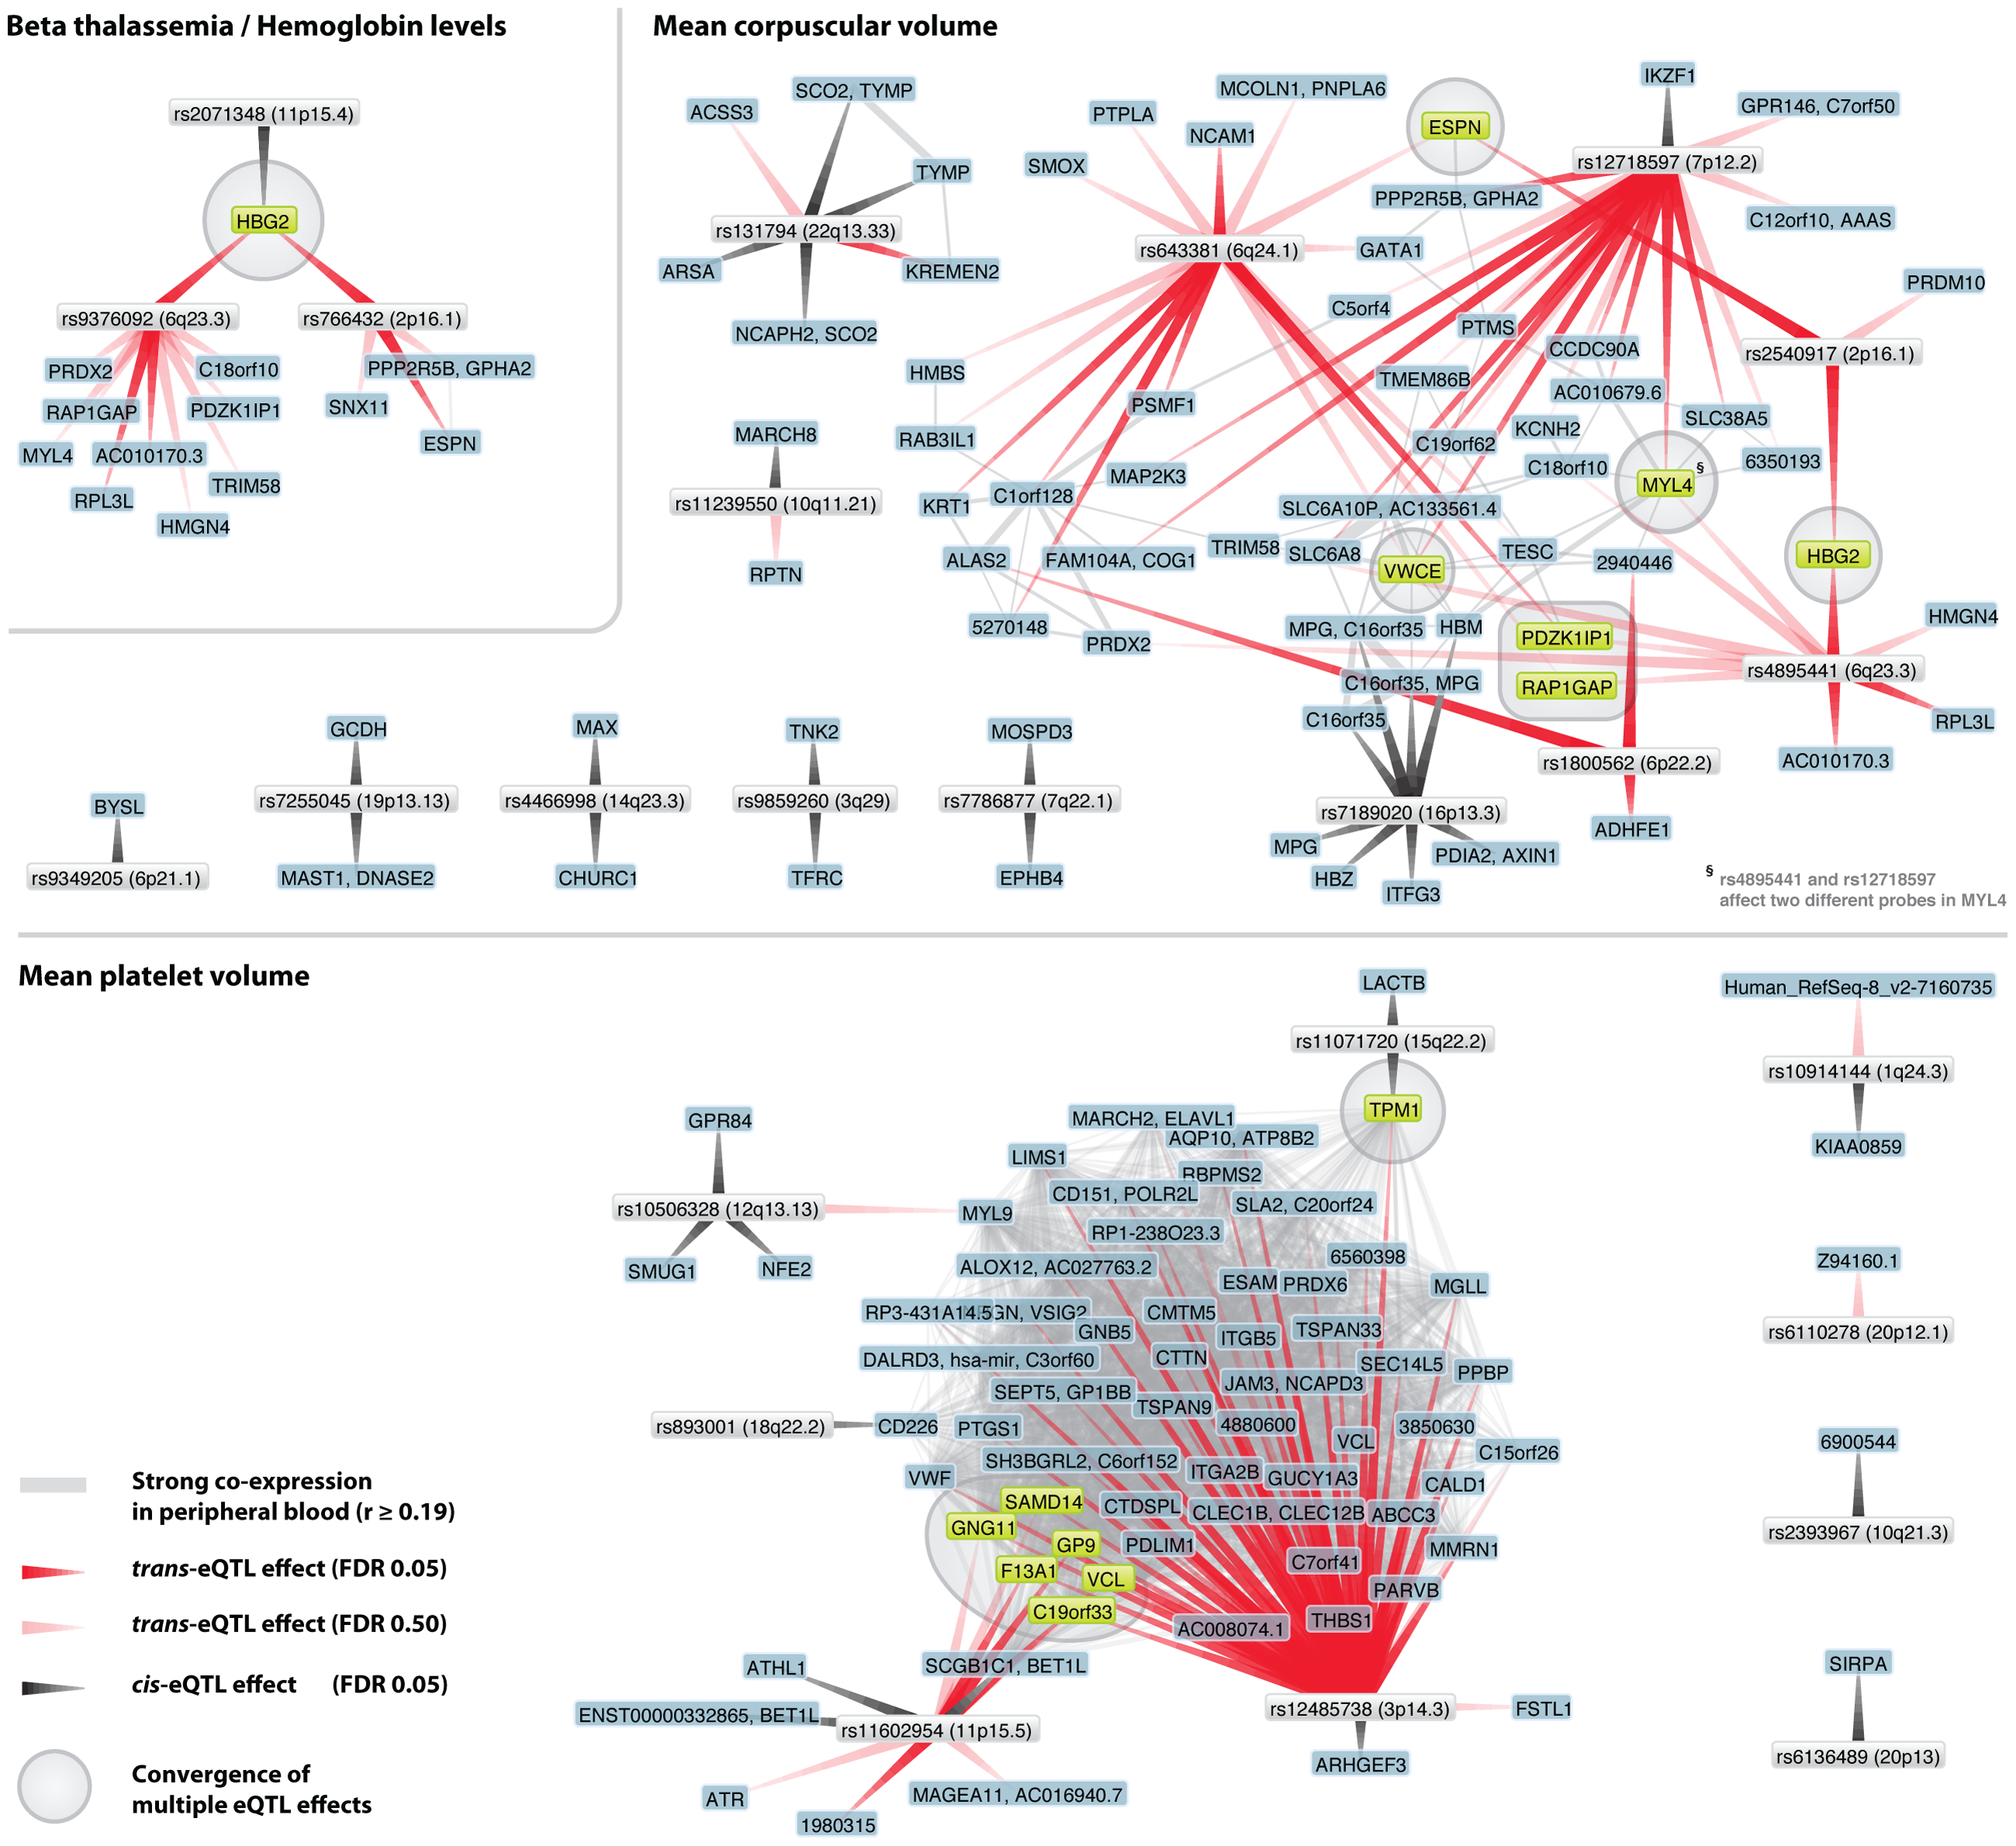 Trait-associated SNPs show convergence on multiple genes.